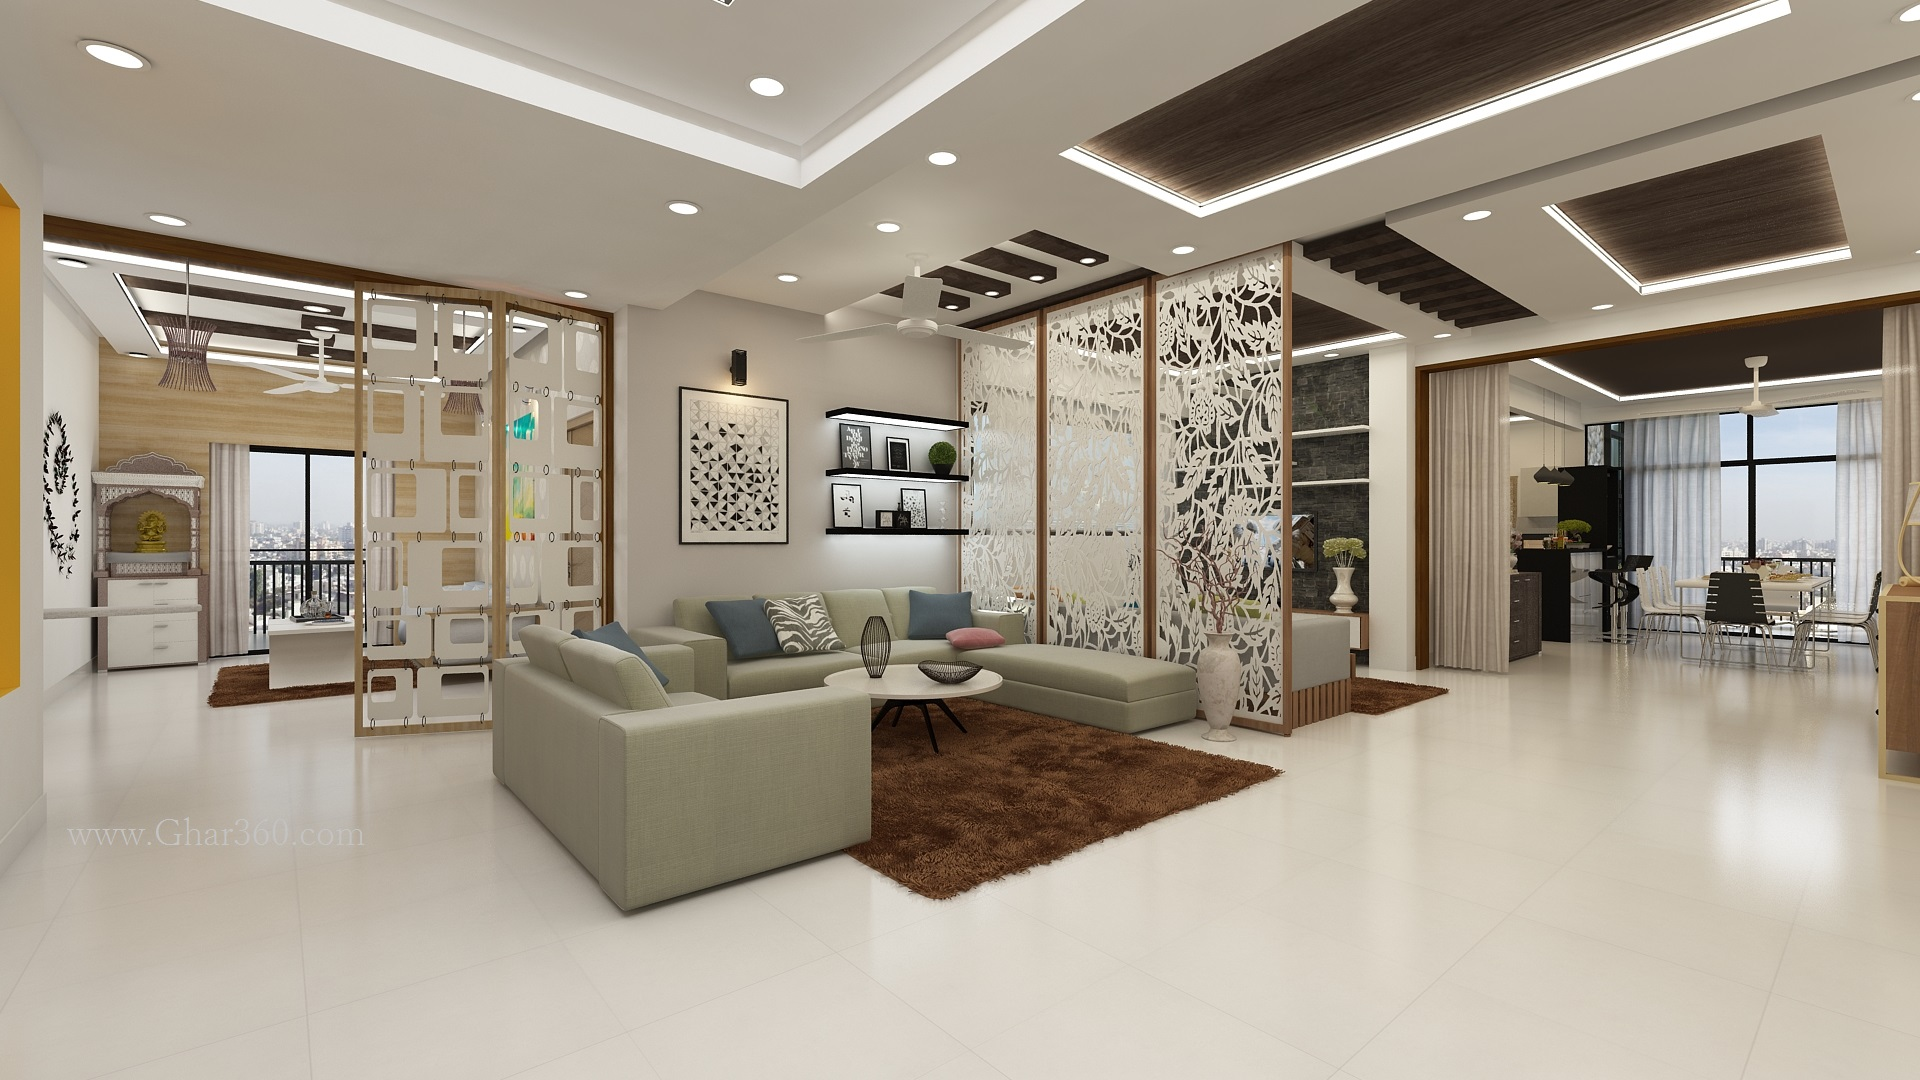 Luxury interior design by ghar360 best interior design for Top luxury interior designers